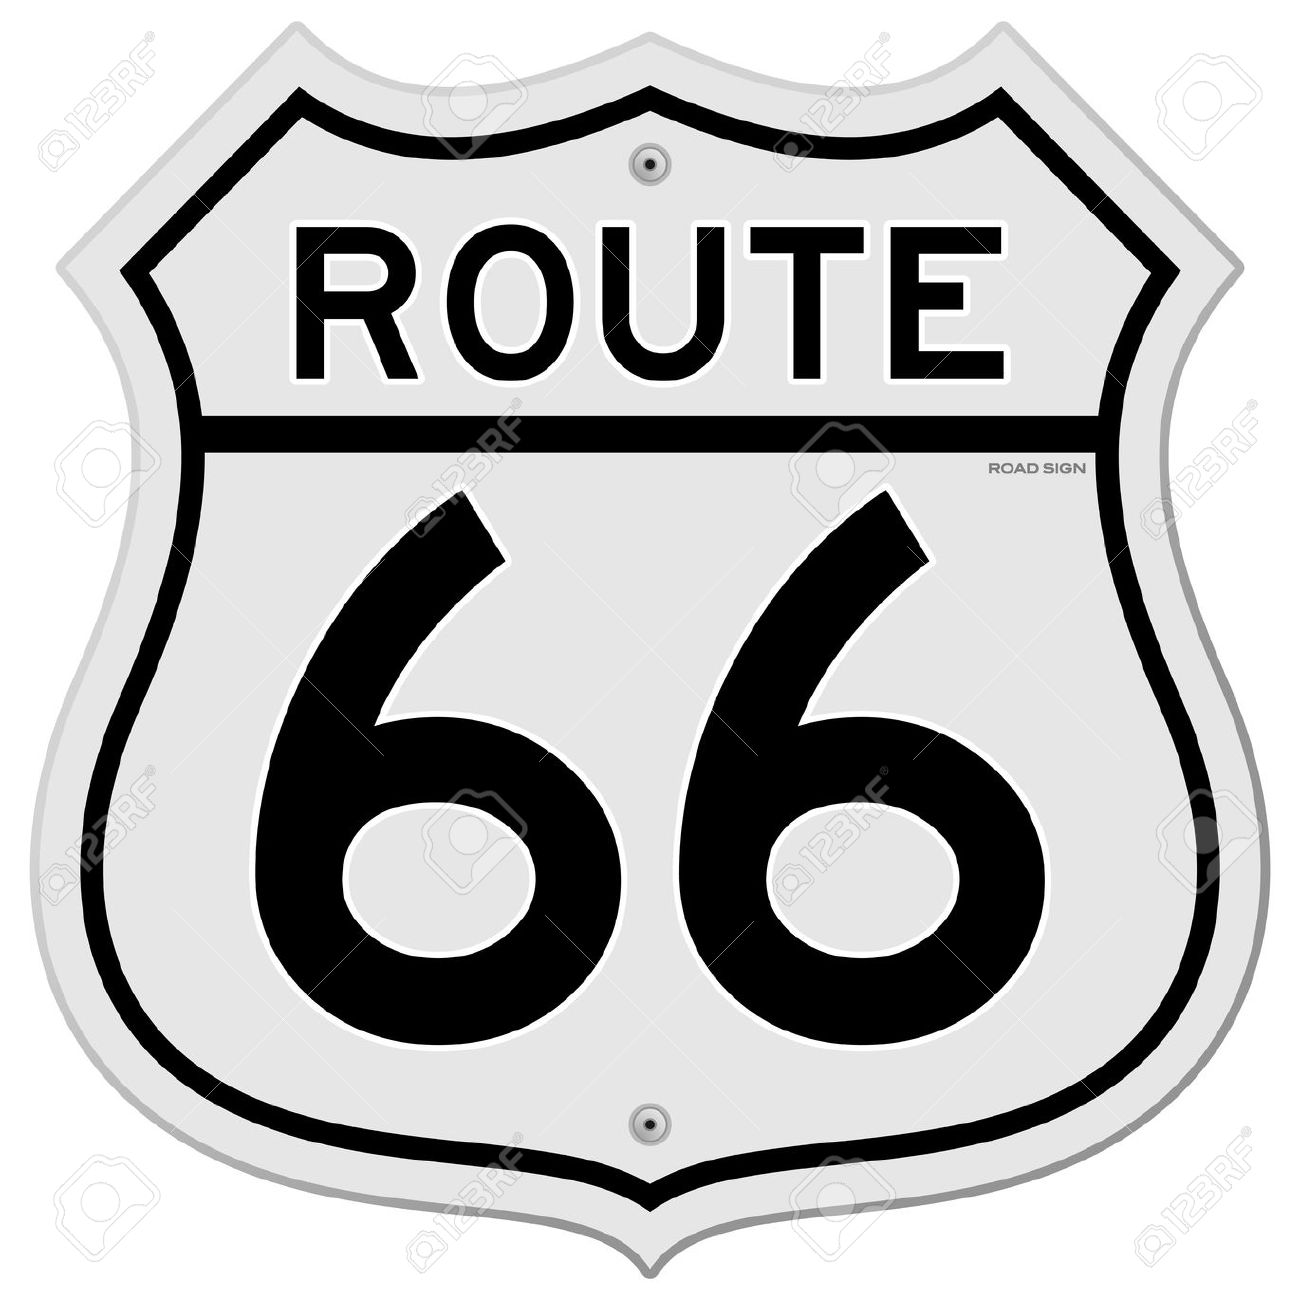 Route sign clip art.